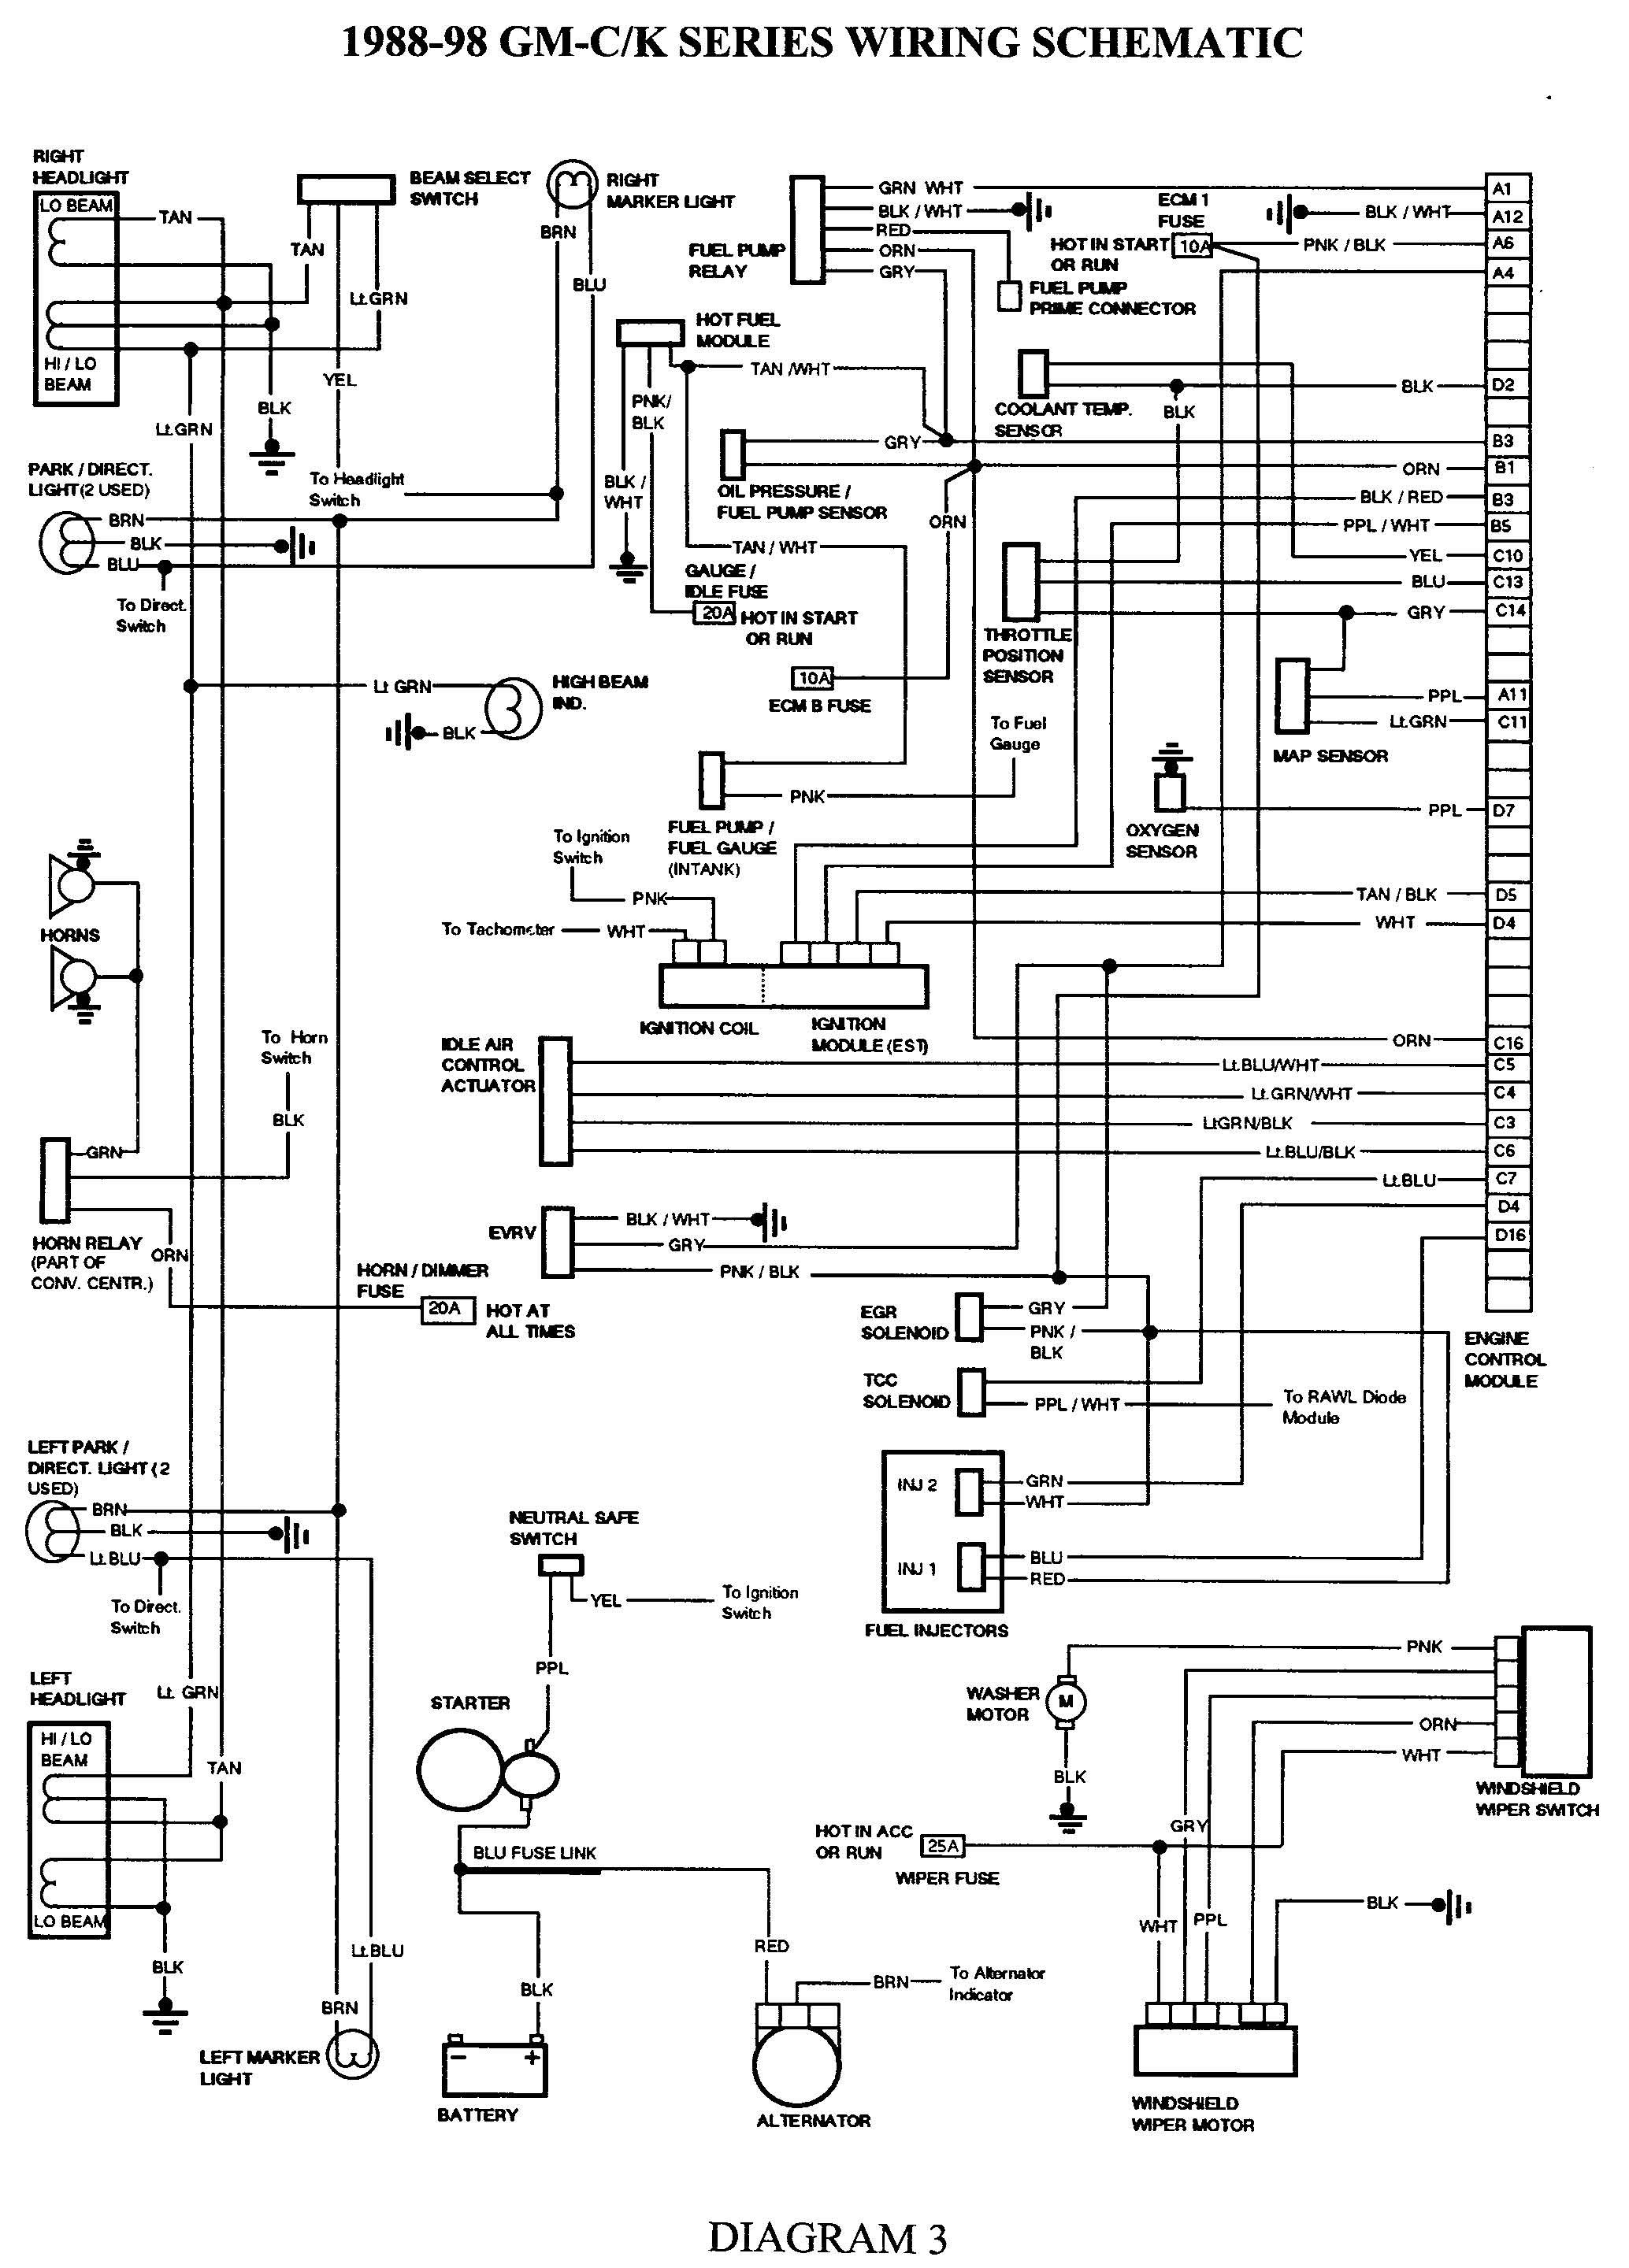 b2f2e5dbdc07dada83ef514f6d4ce3d4 electric wiring diagram instrument panel auto repair Basic Electrical Wiring Diagrams at suagrazia.org